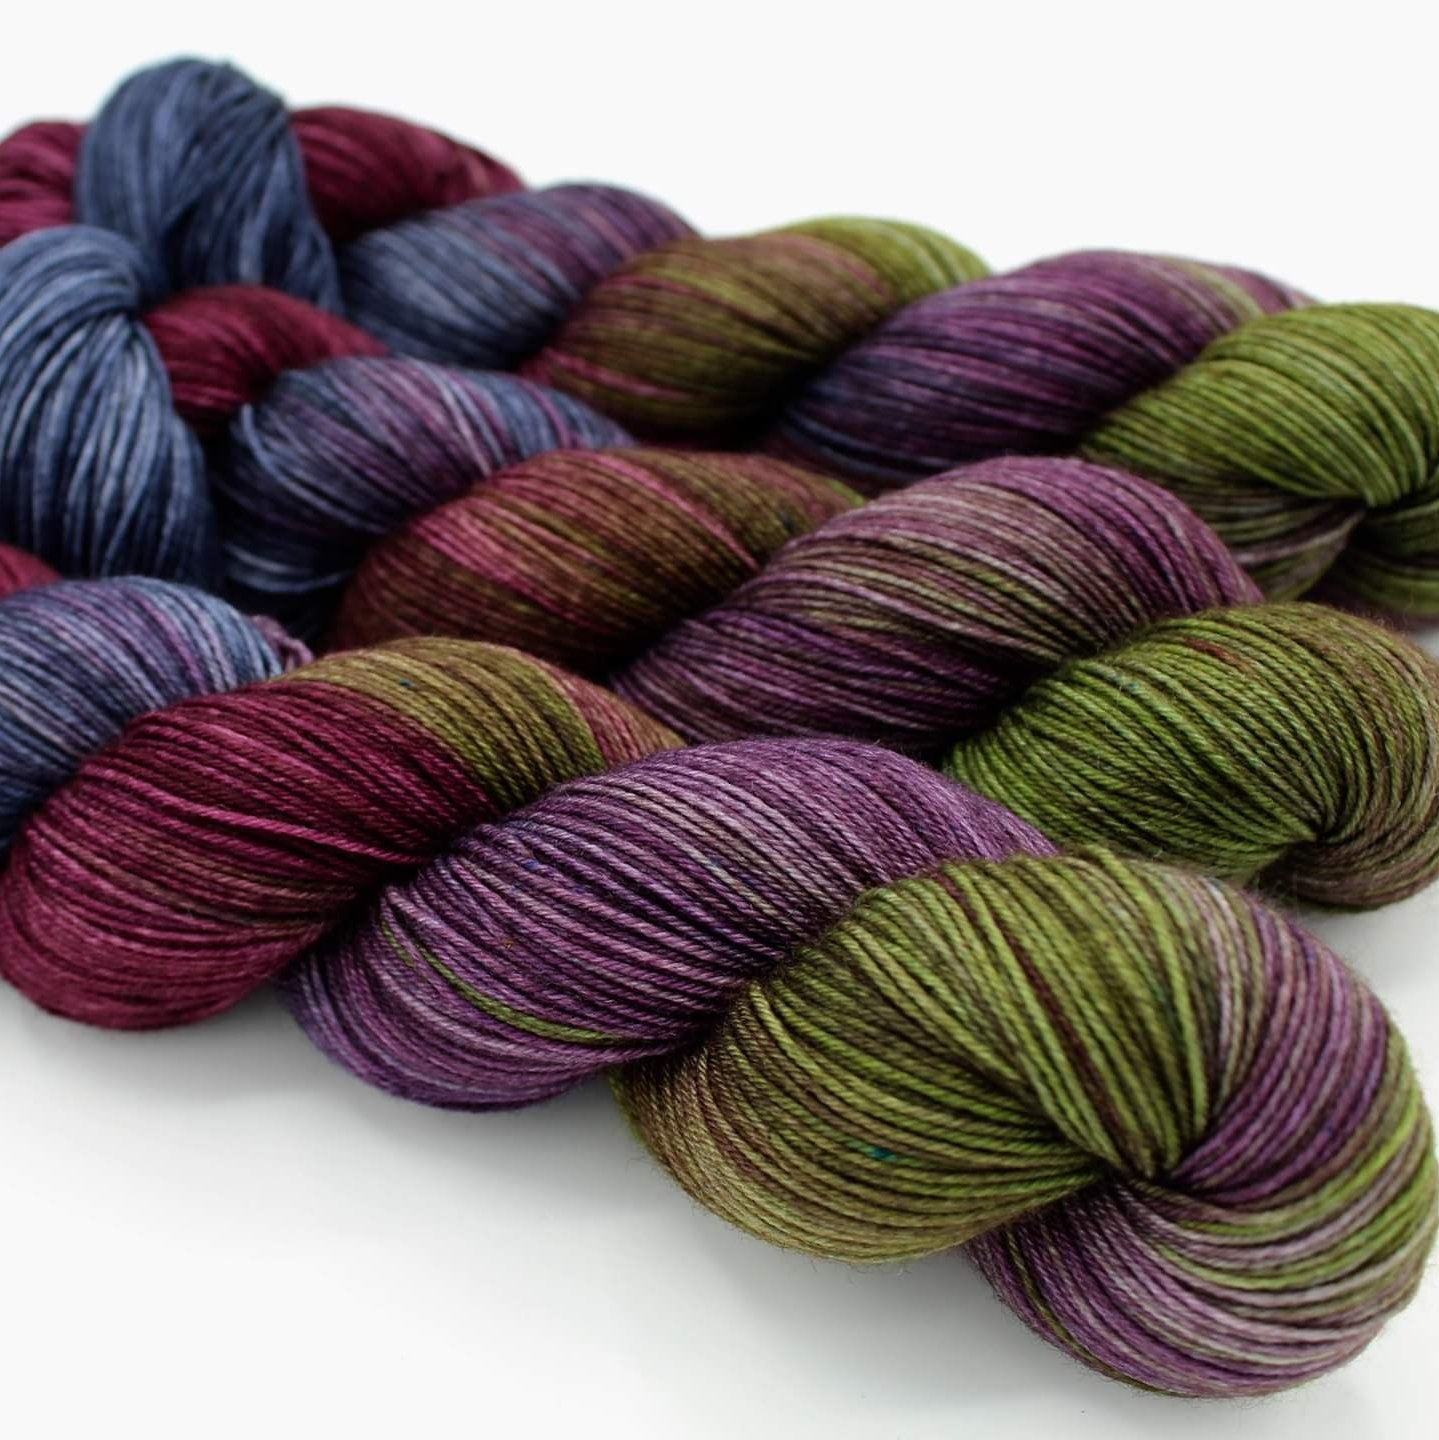 Groovy Hues Cuddly Sock - If You Can't Say Anything Nice, Stop Trying